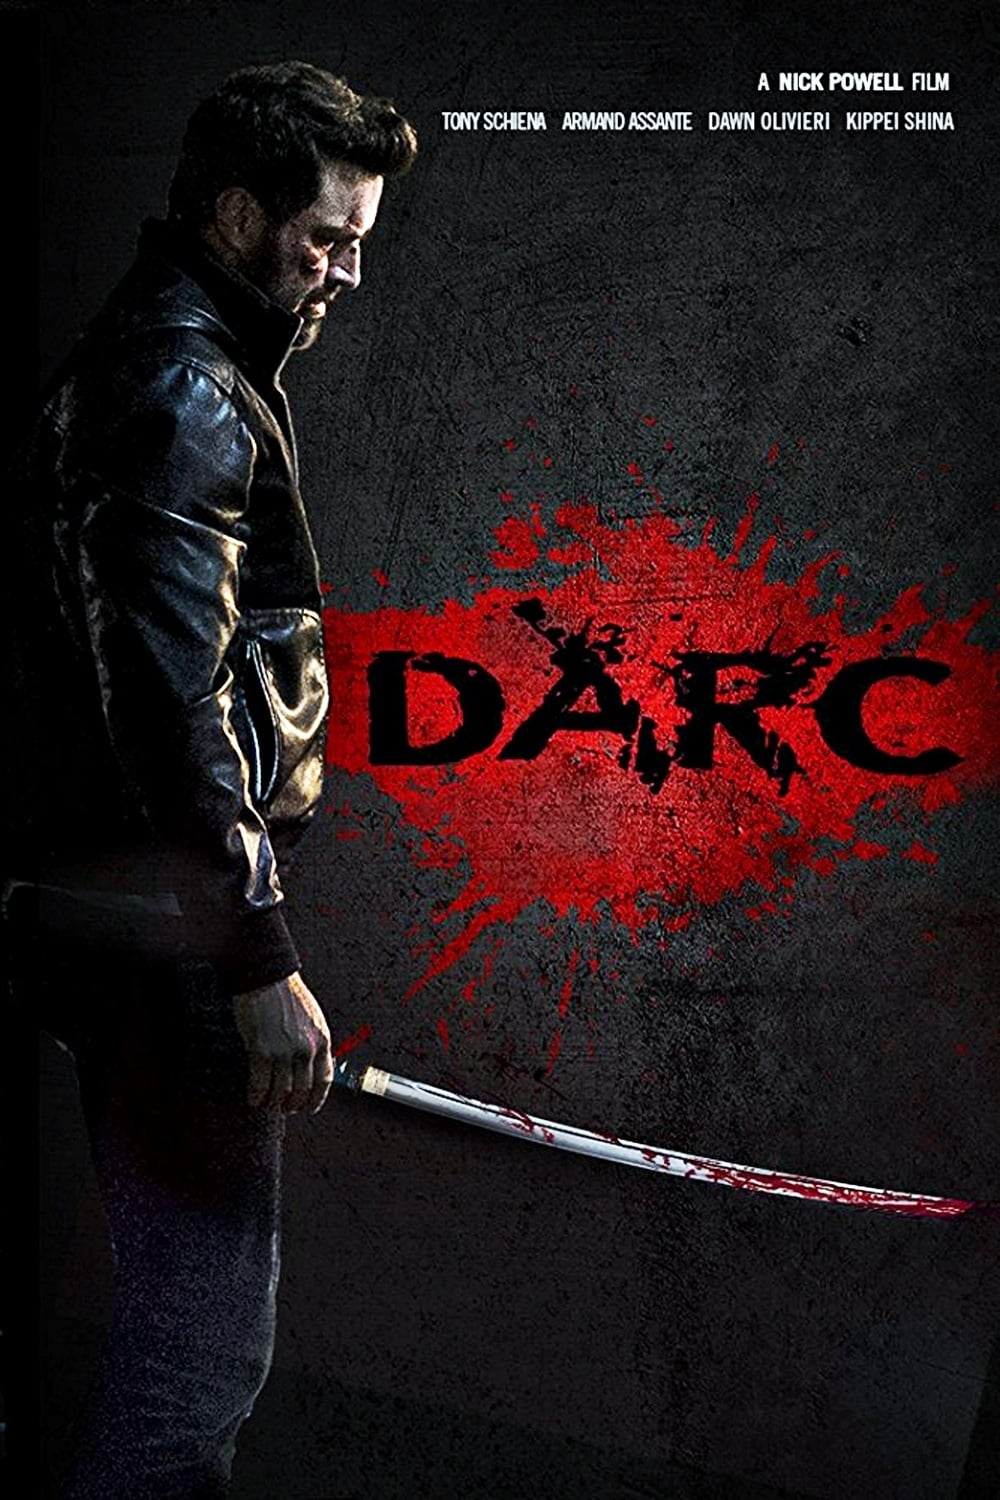 image for Darc